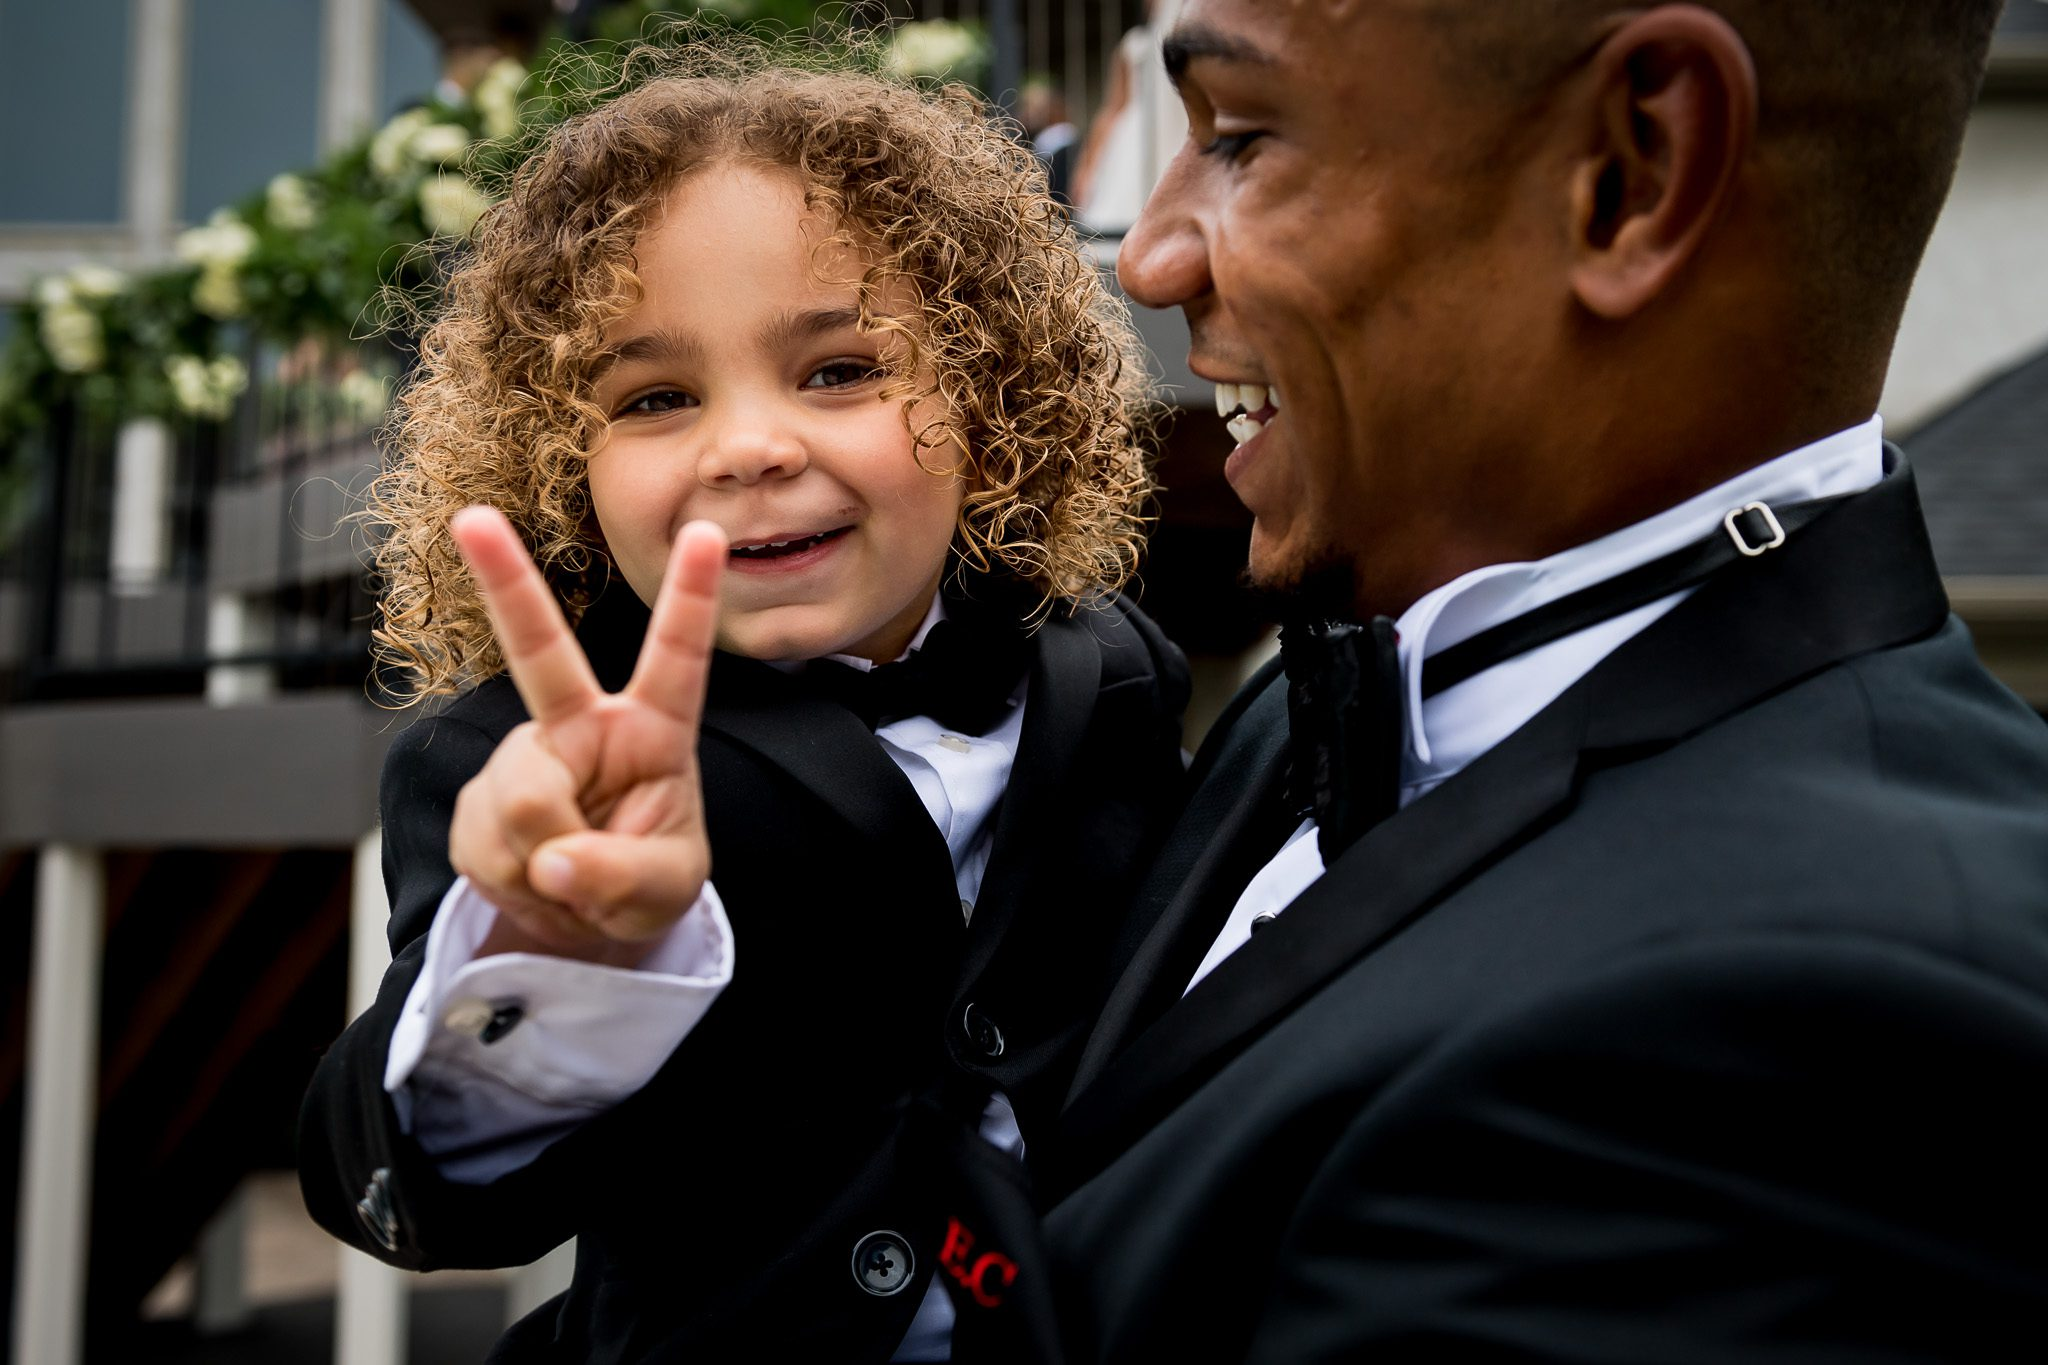 3-year-old throwing up a peace sign with his fingers, while smiling, and wearing an amazing suit, and in his dad arms, who just got married.